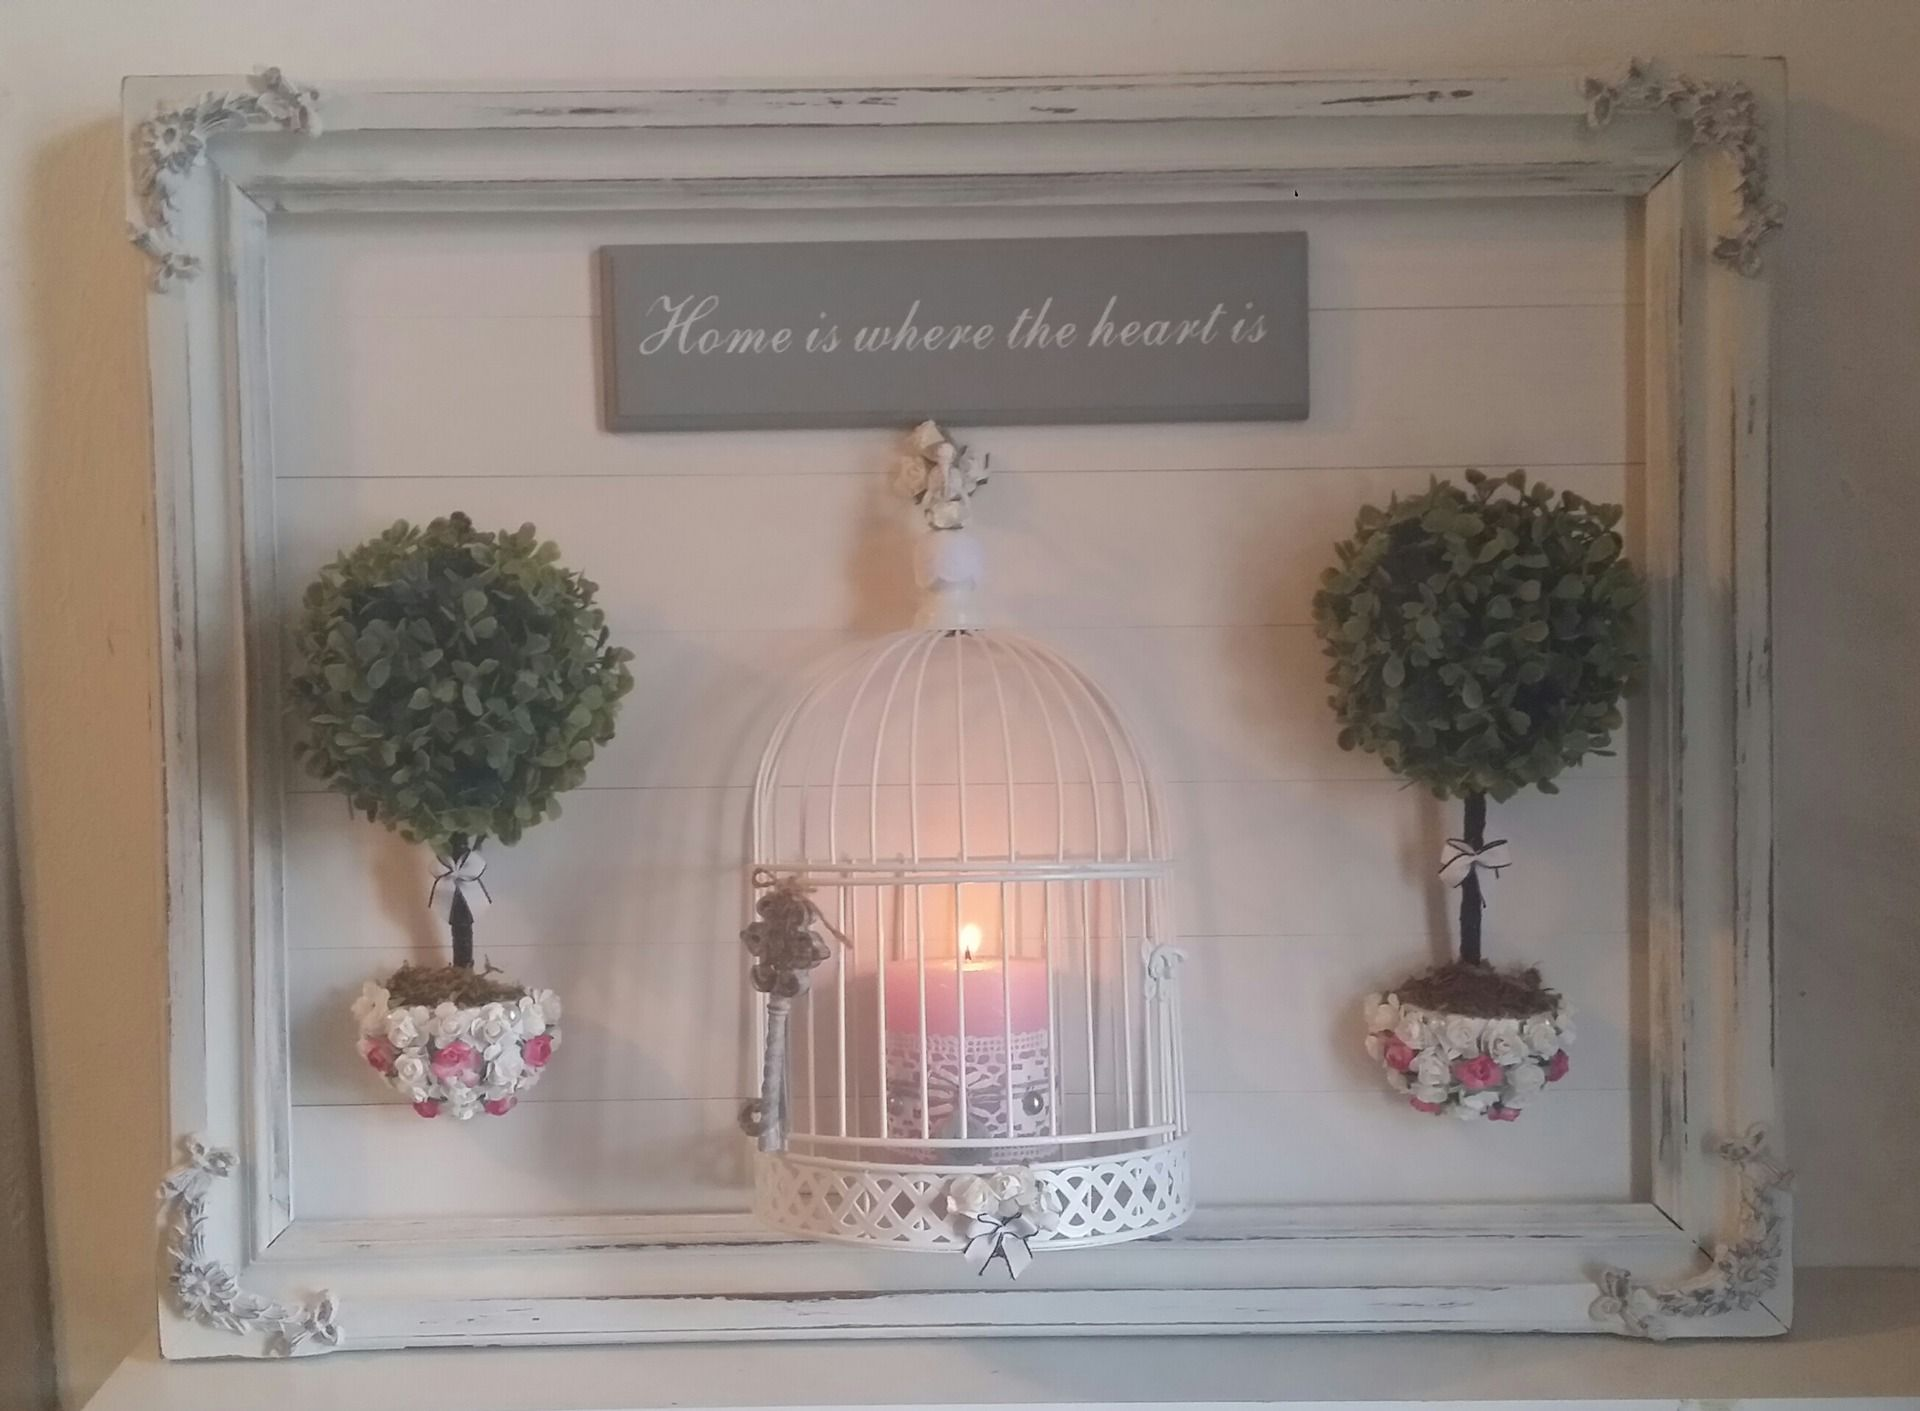 cadre ancien et applique bougeoirs dans une cage style shabby chic luminaires par les. Black Bedroom Furniture Sets. Home Design Ideas